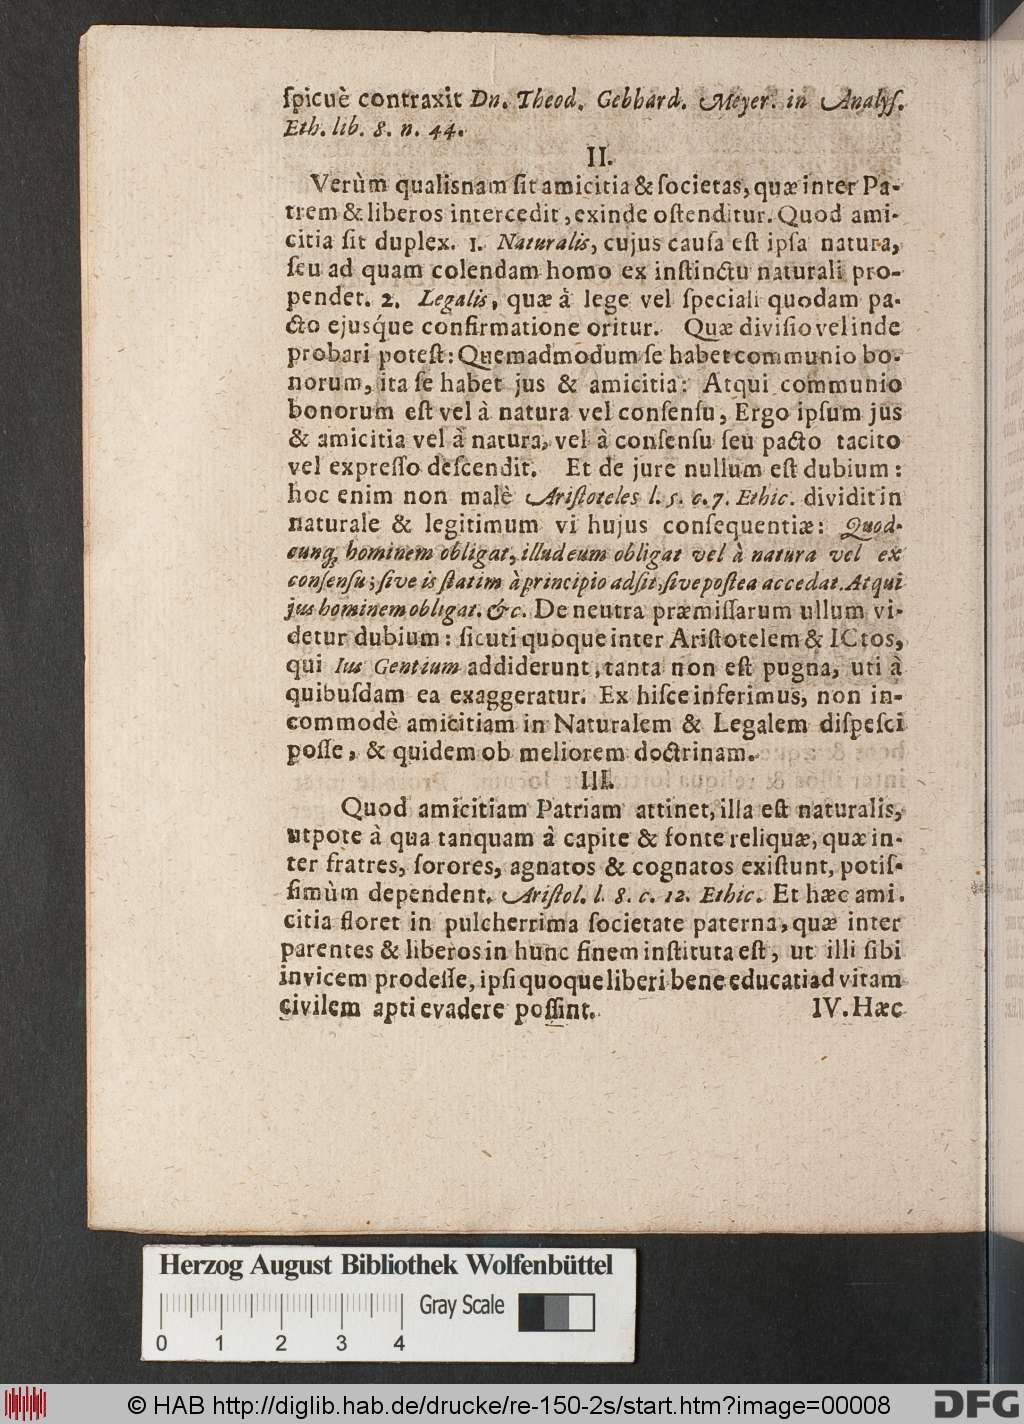 https://diglib.hab.de/drucke/re-150-2s/00008.jpg